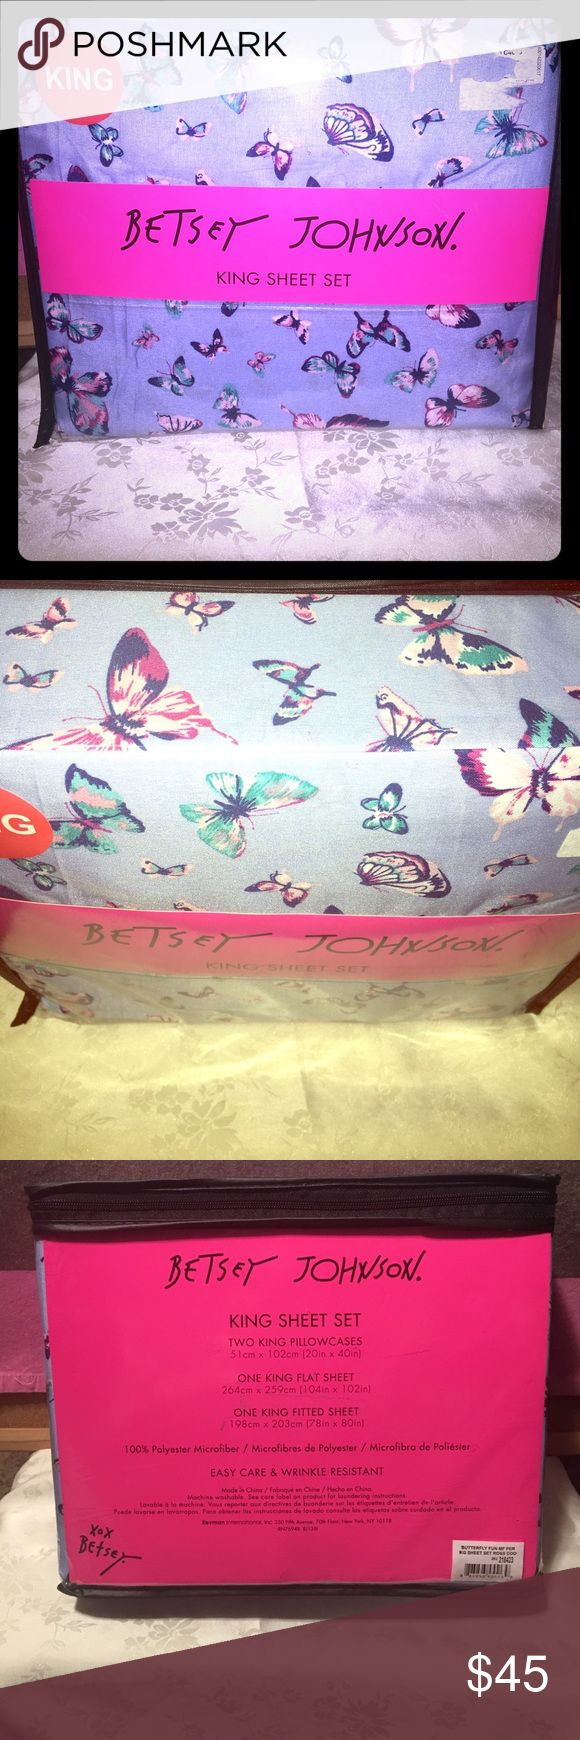 """BETSEY JOHNSON King Size Sheet Set """"Butterflies"""" This item for sale is brand new in the retail bag. BETSEY JOHNSON •KING SIZE SHEET SET• 100% polyester microfiber easy care and wrinkle resistant. 2 King pillowcases (20"""" x 40"""")  one king flat sheet (104"""" x 102"""")  one king fitted sheet (78"""" x 80"""") The style is """"butterfly fun"""" in a dark baby blue color. Betsey Johnson Other"""